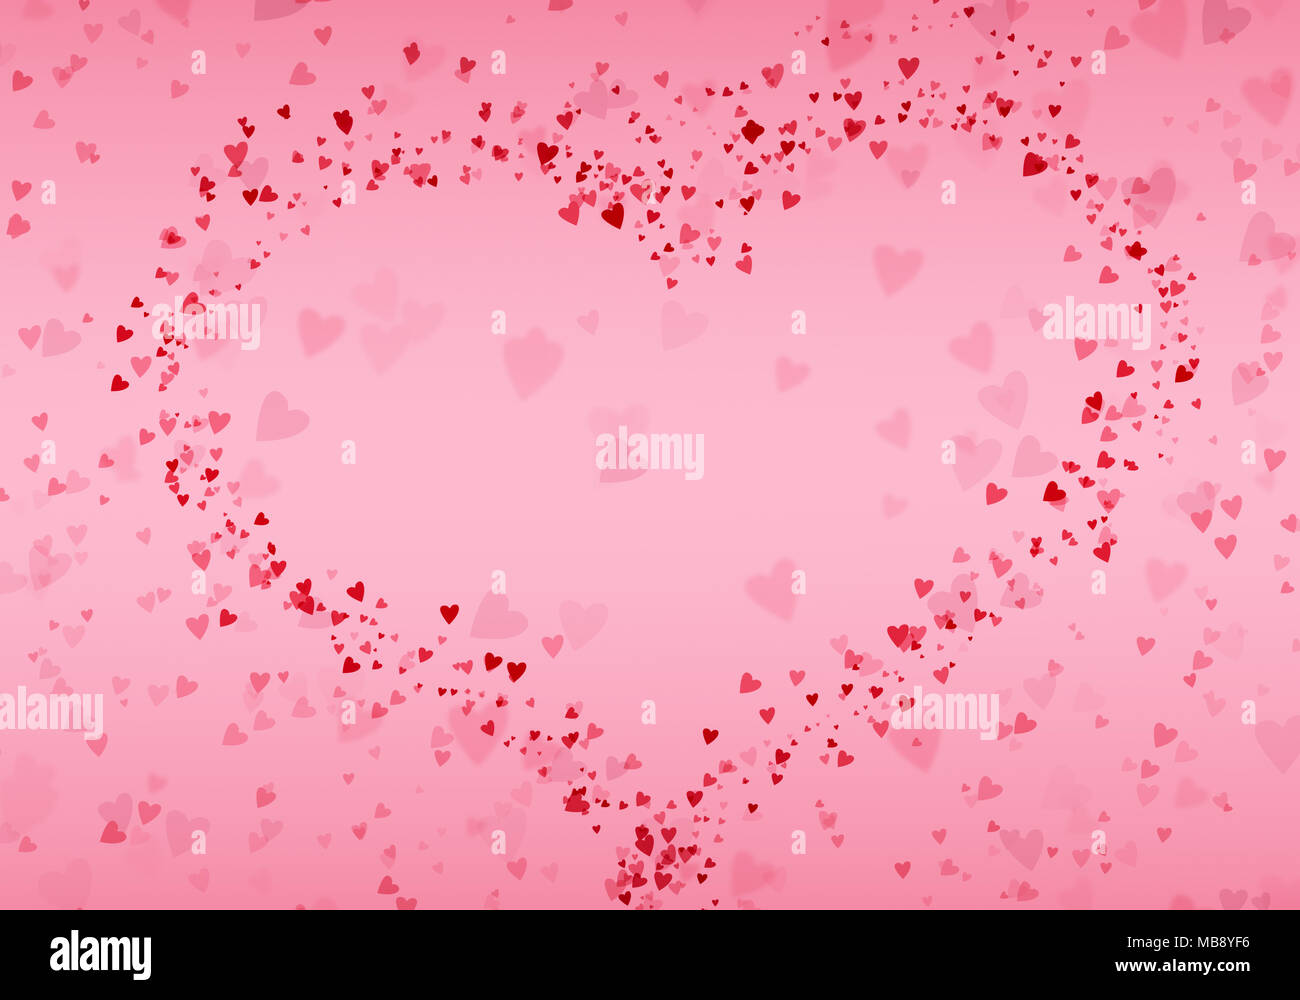 happy valentines day vintage background illustration with glitter in shape of big heart wallpaper gift card poster flyer MB8YF6